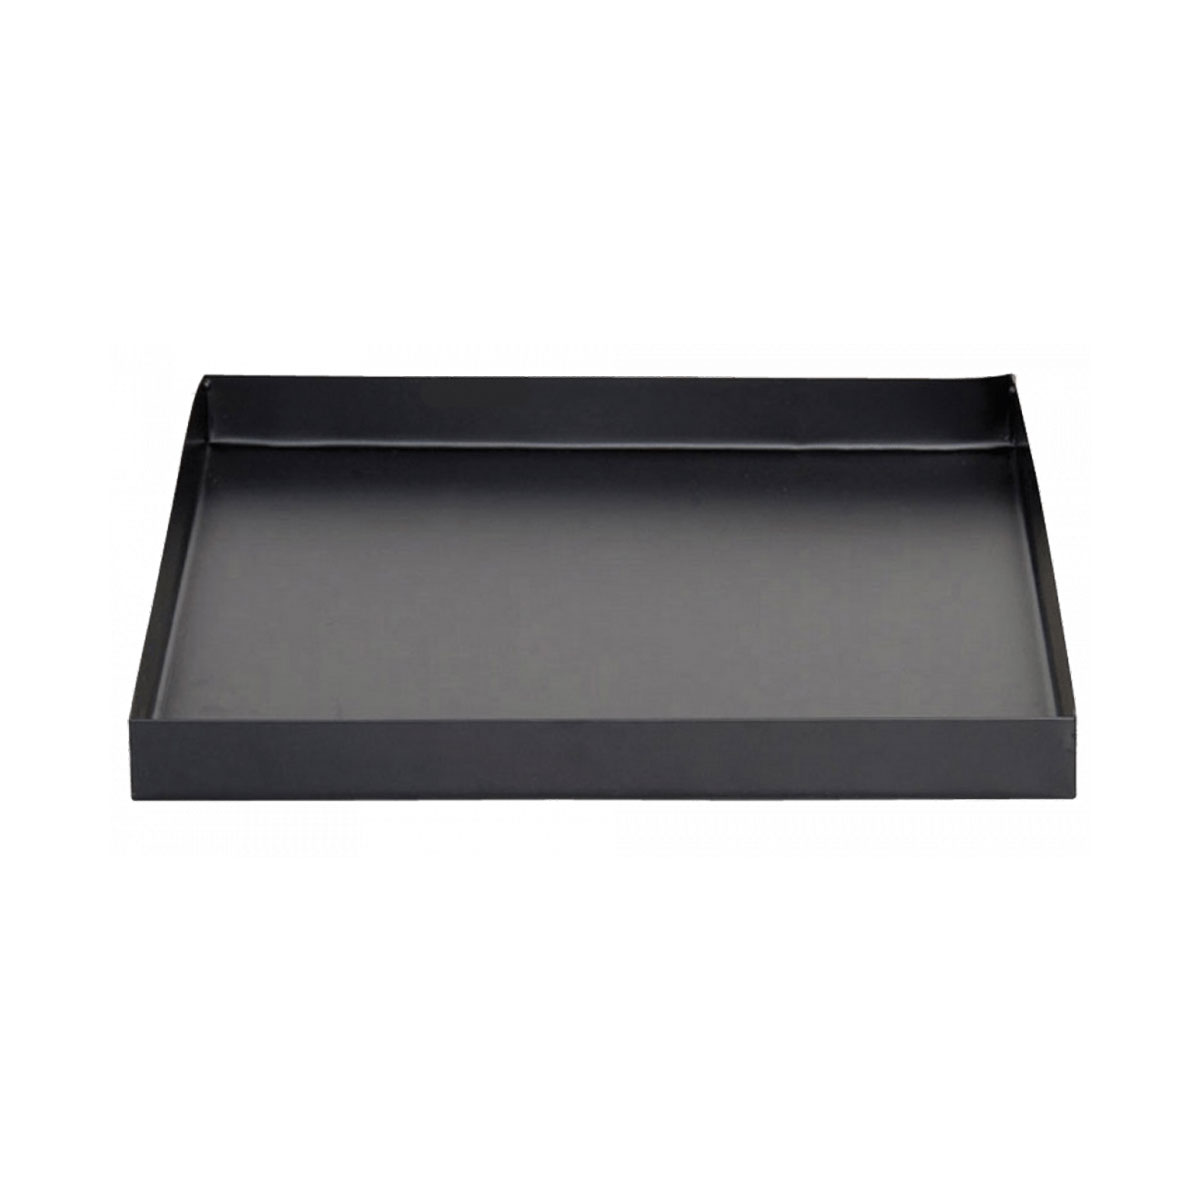 BONFEU Base Plate Black Square 50*50